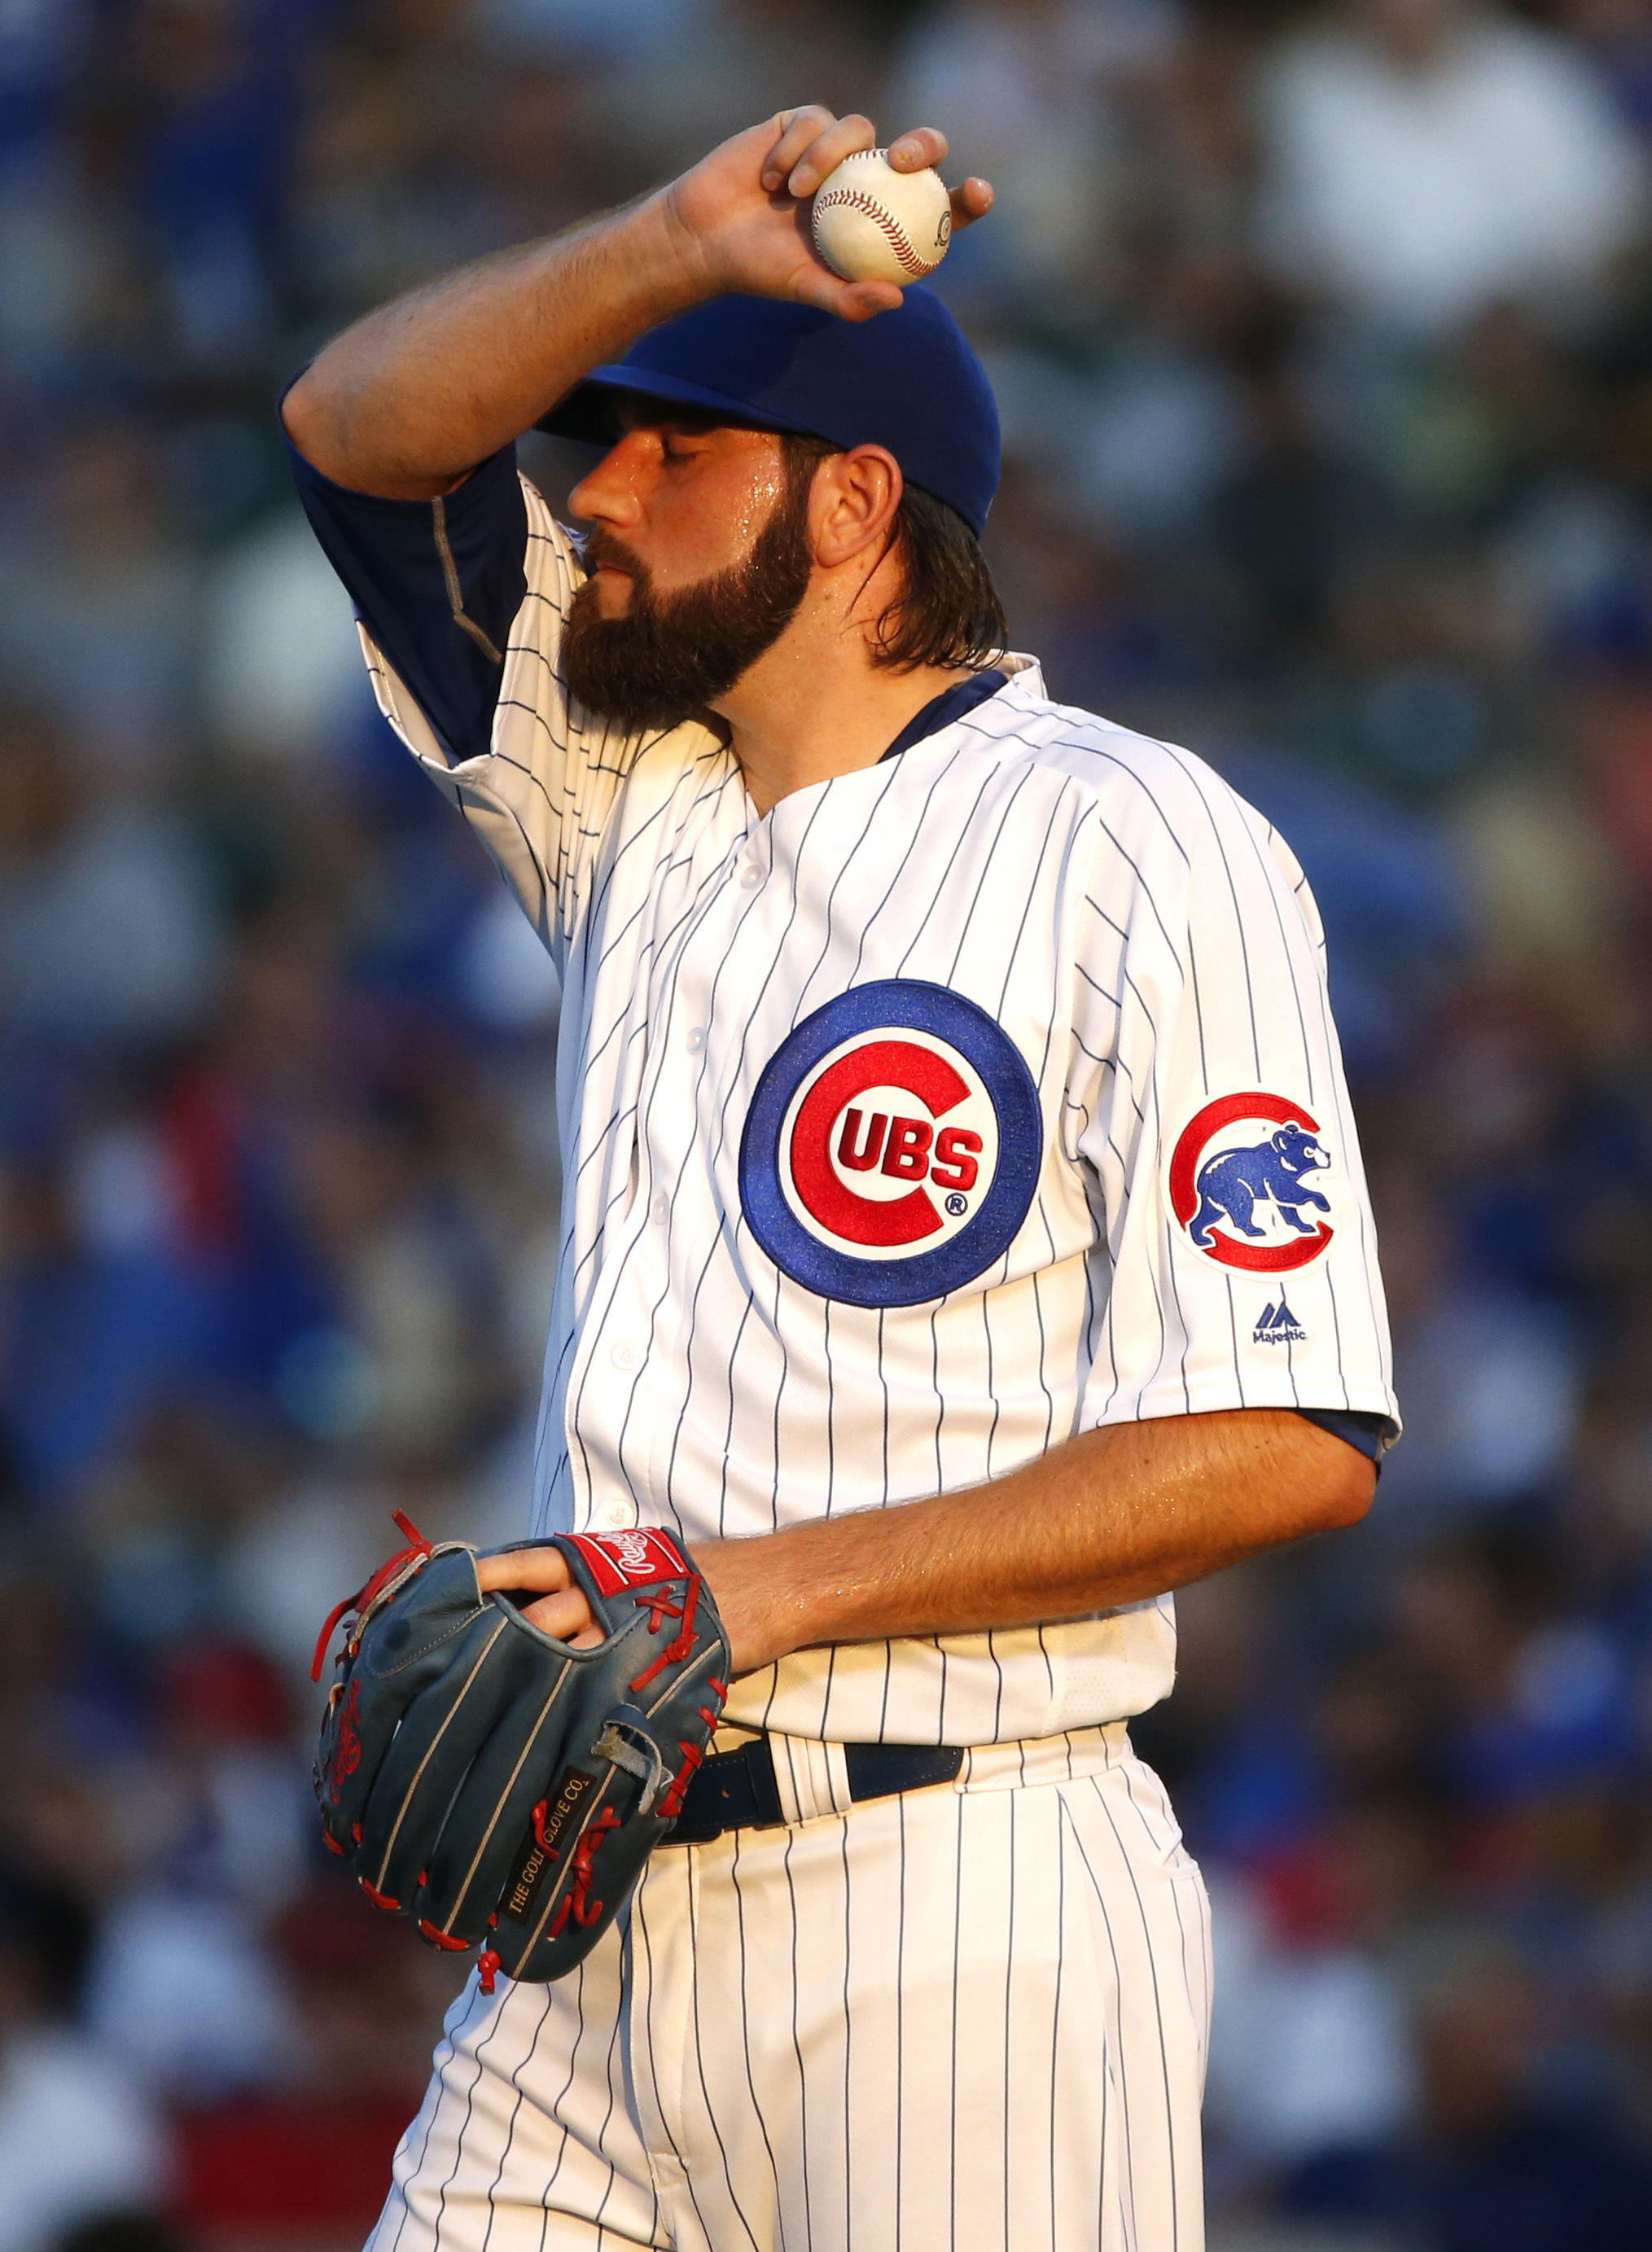 Chicago Cubs starter Jason Hammel wipes his face during the first inning of the team's baseball game against the Los Angeles Angels in Chicago, Wednesday, Aug. 10, 2016. (AP Photo/Nam Y. Huh)